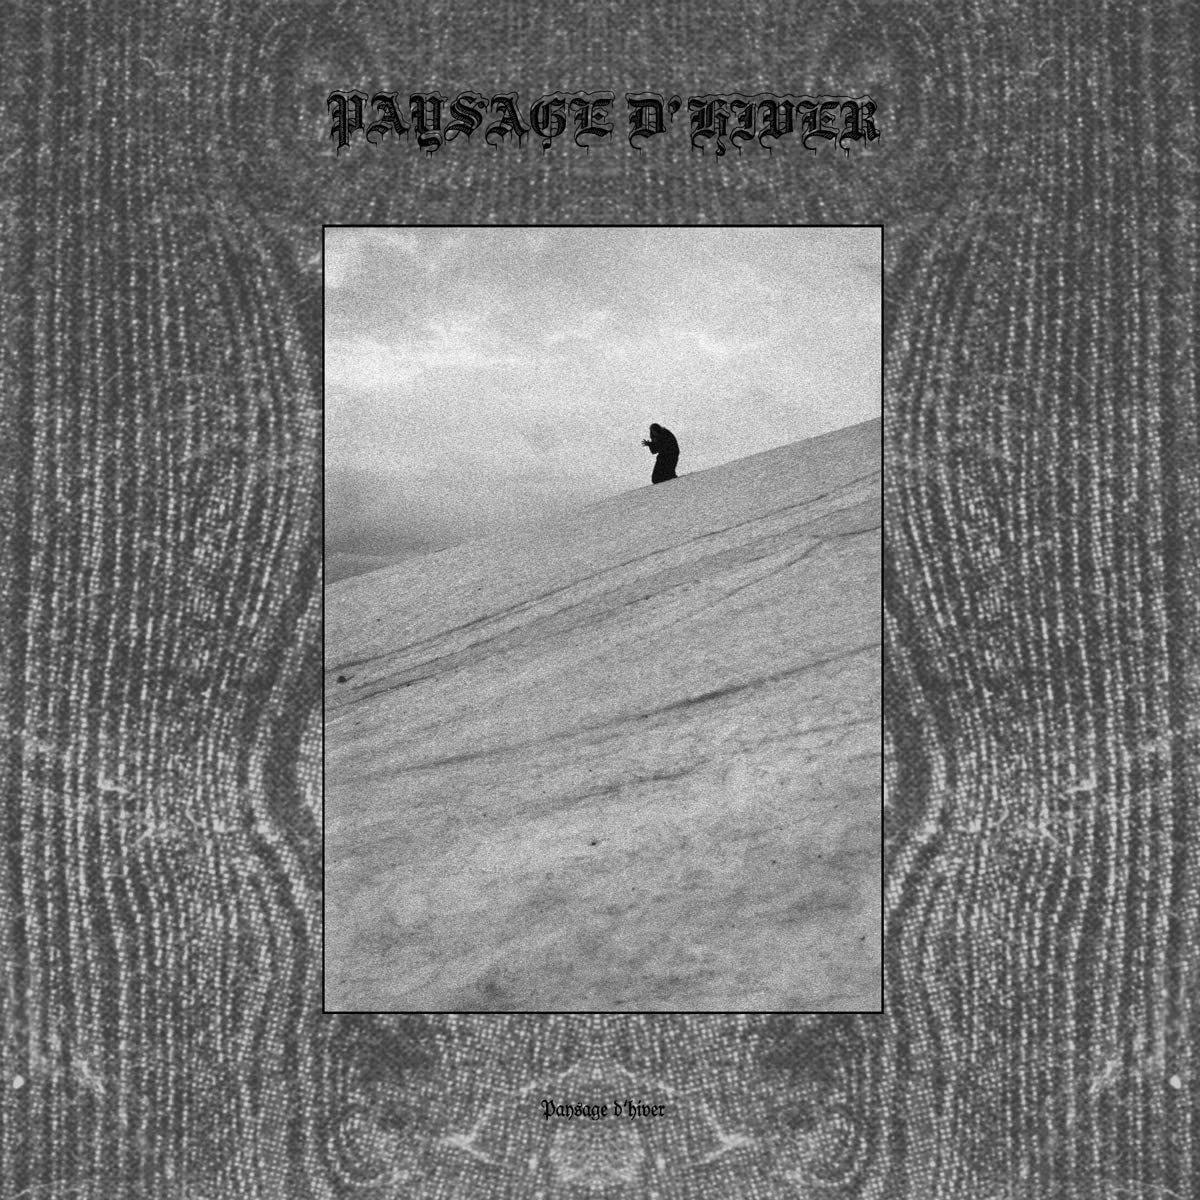 Review for Paysage d'Hiver - Paysage d'Hiver